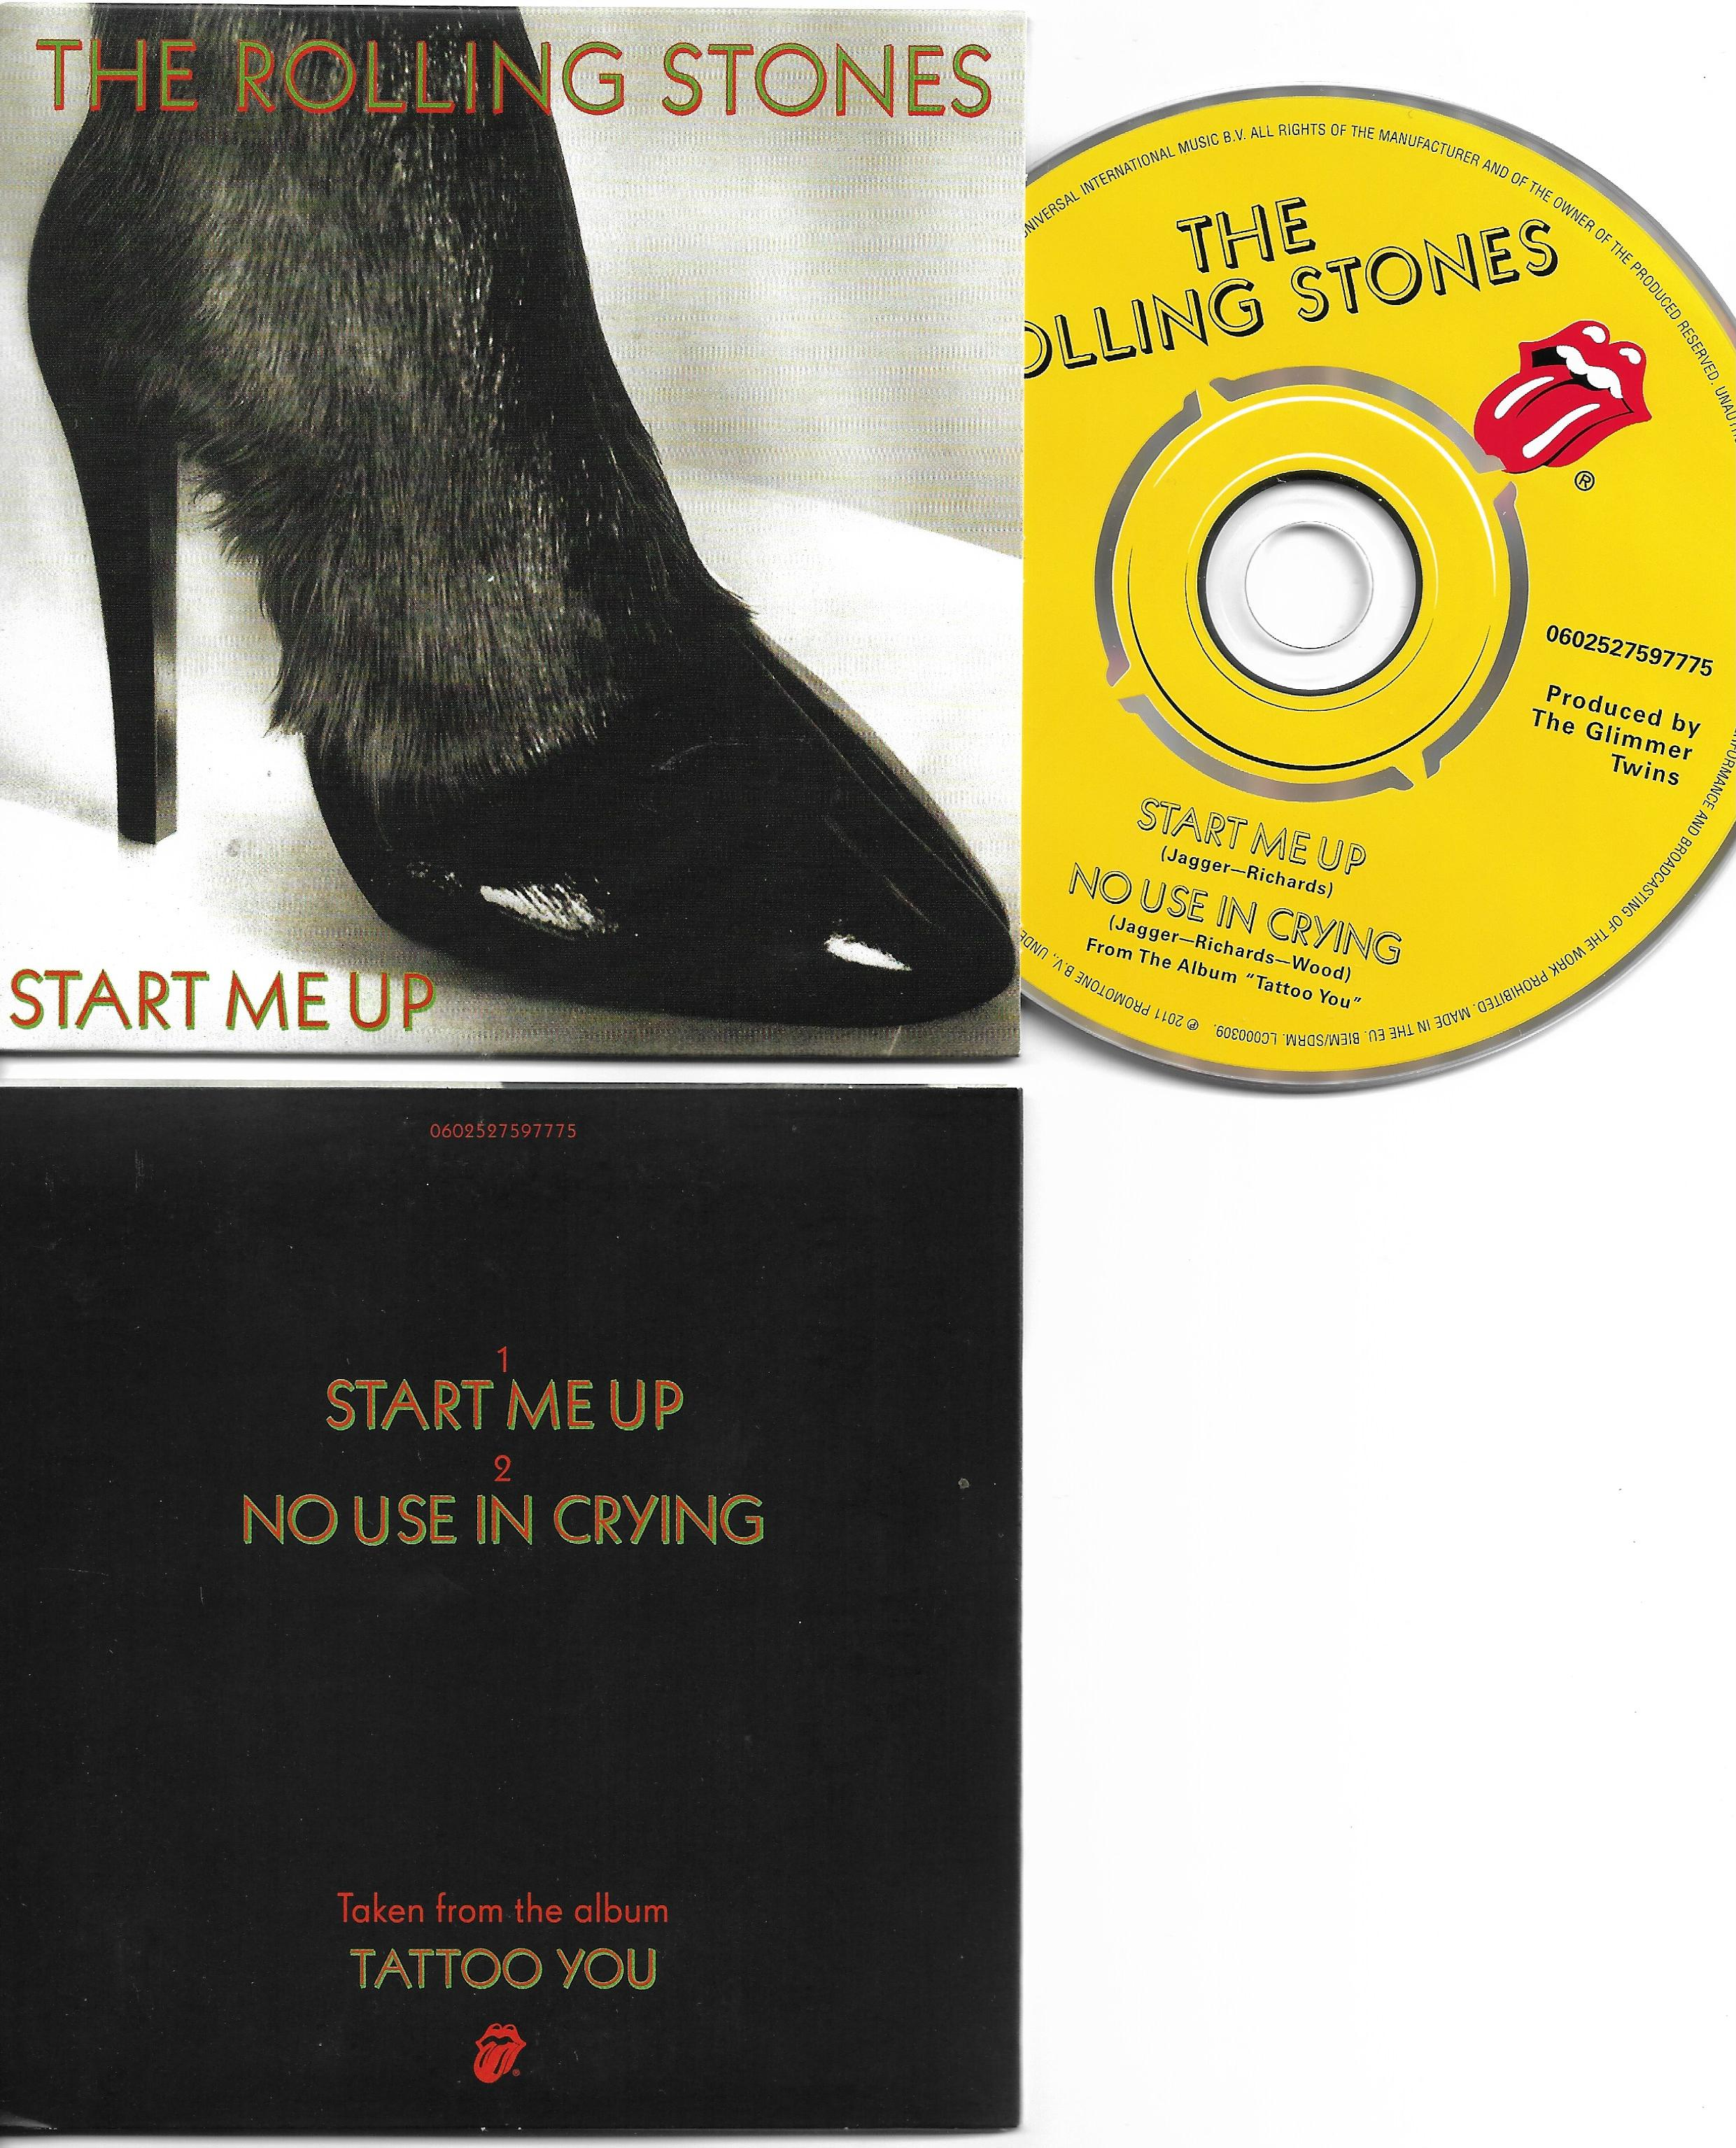 THE ROLLING STONES - Start me up 2-track CARD SLEEVE - CD single